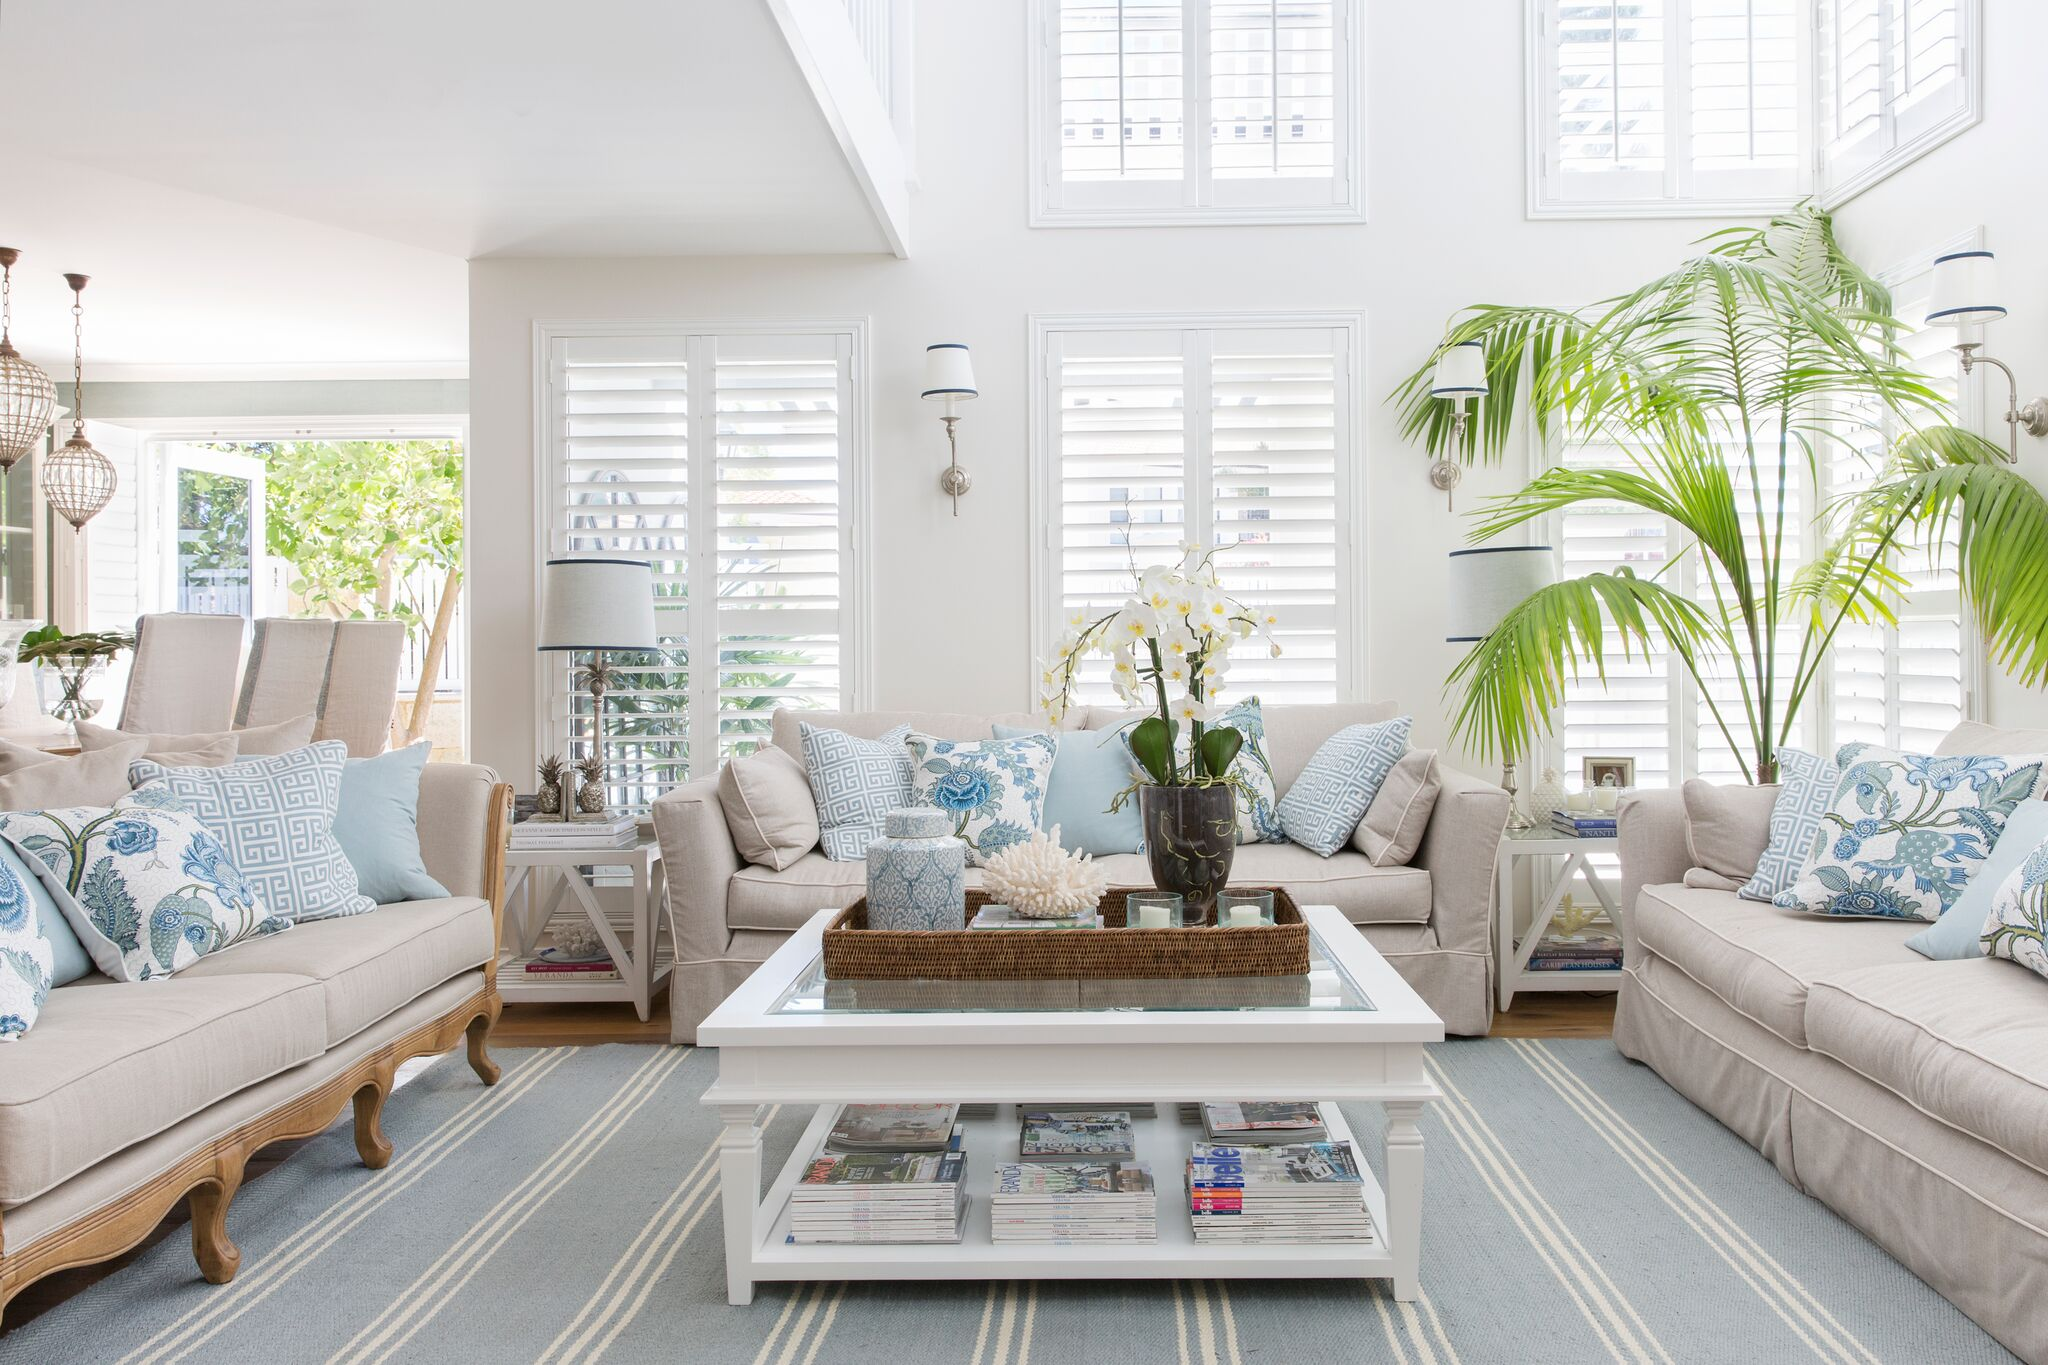 How To Add Hamptons Style To Your Home